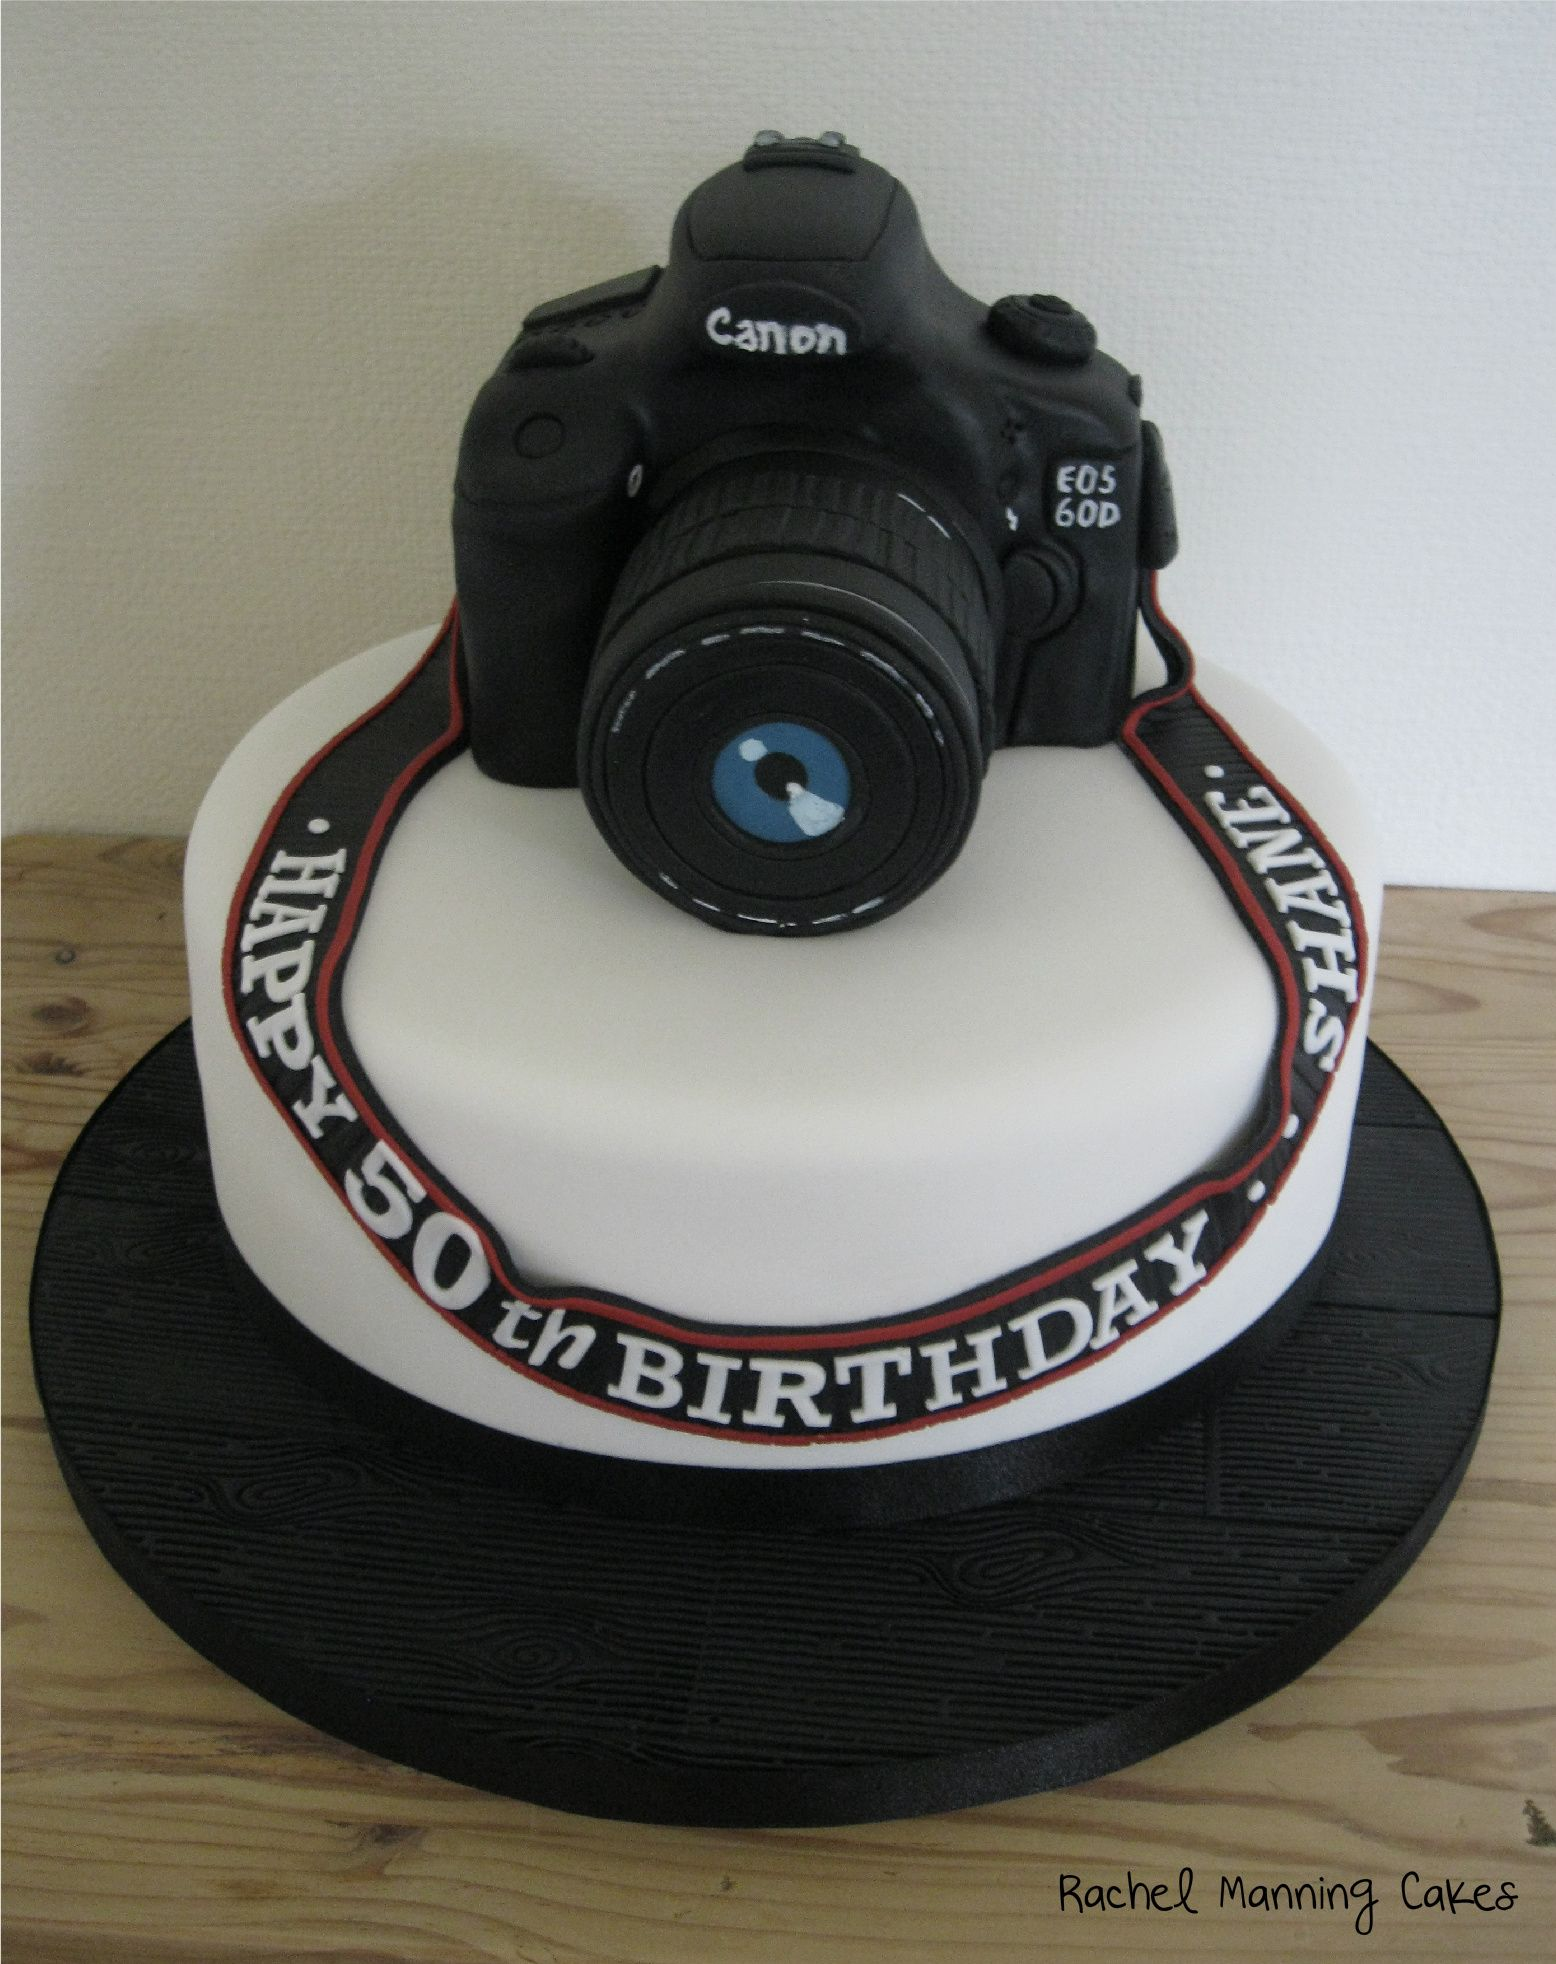 Peachy Camera Cake With Images Camera Cakes Fondant Cakes Dad Cake Funny Birthday Cards Online Barepcheapnameinfo